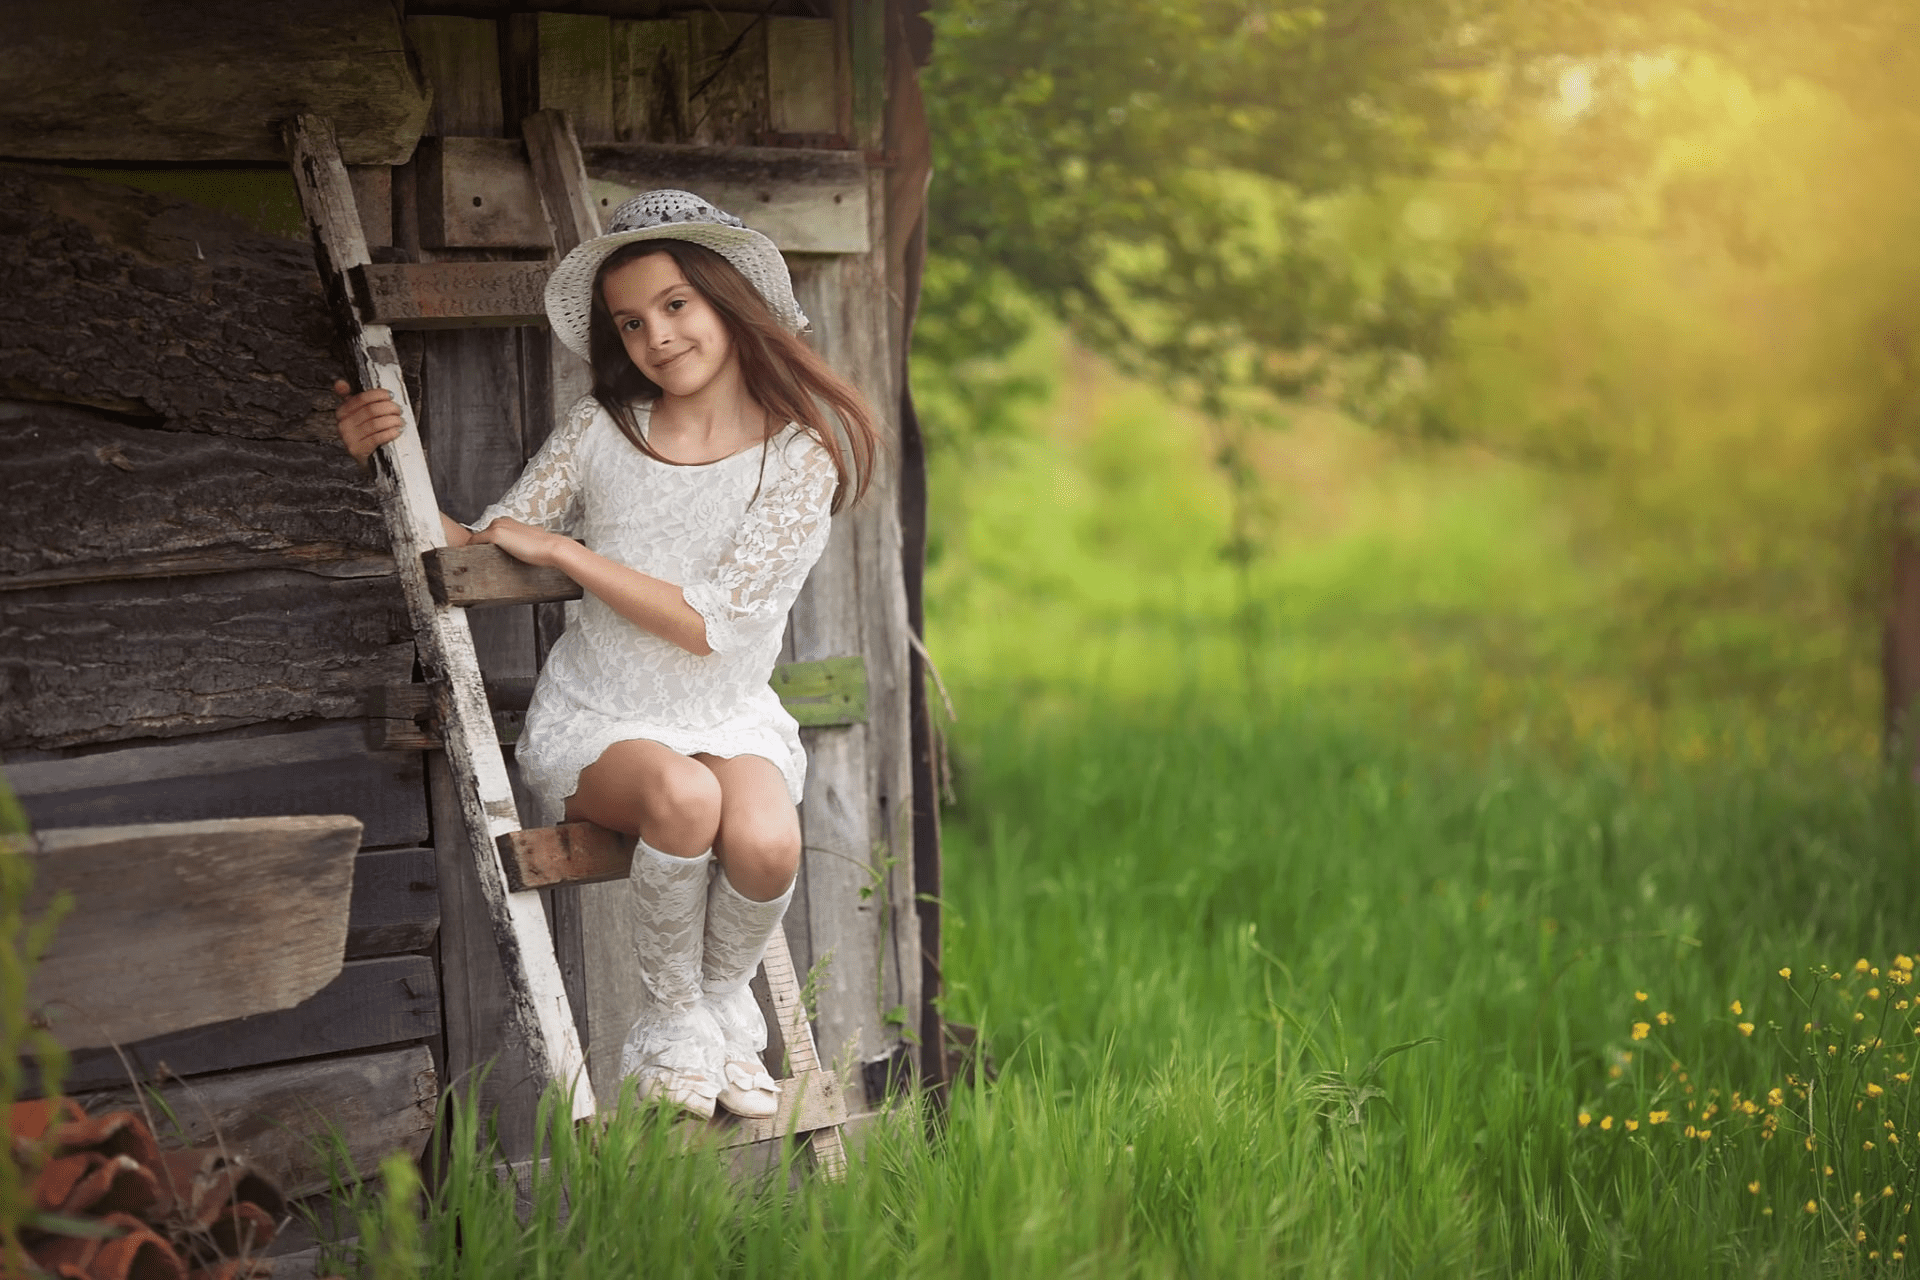 Cute Little Girl Hd Wallpapers 1080p Country Girl Wallpapers Pixelstalk Net